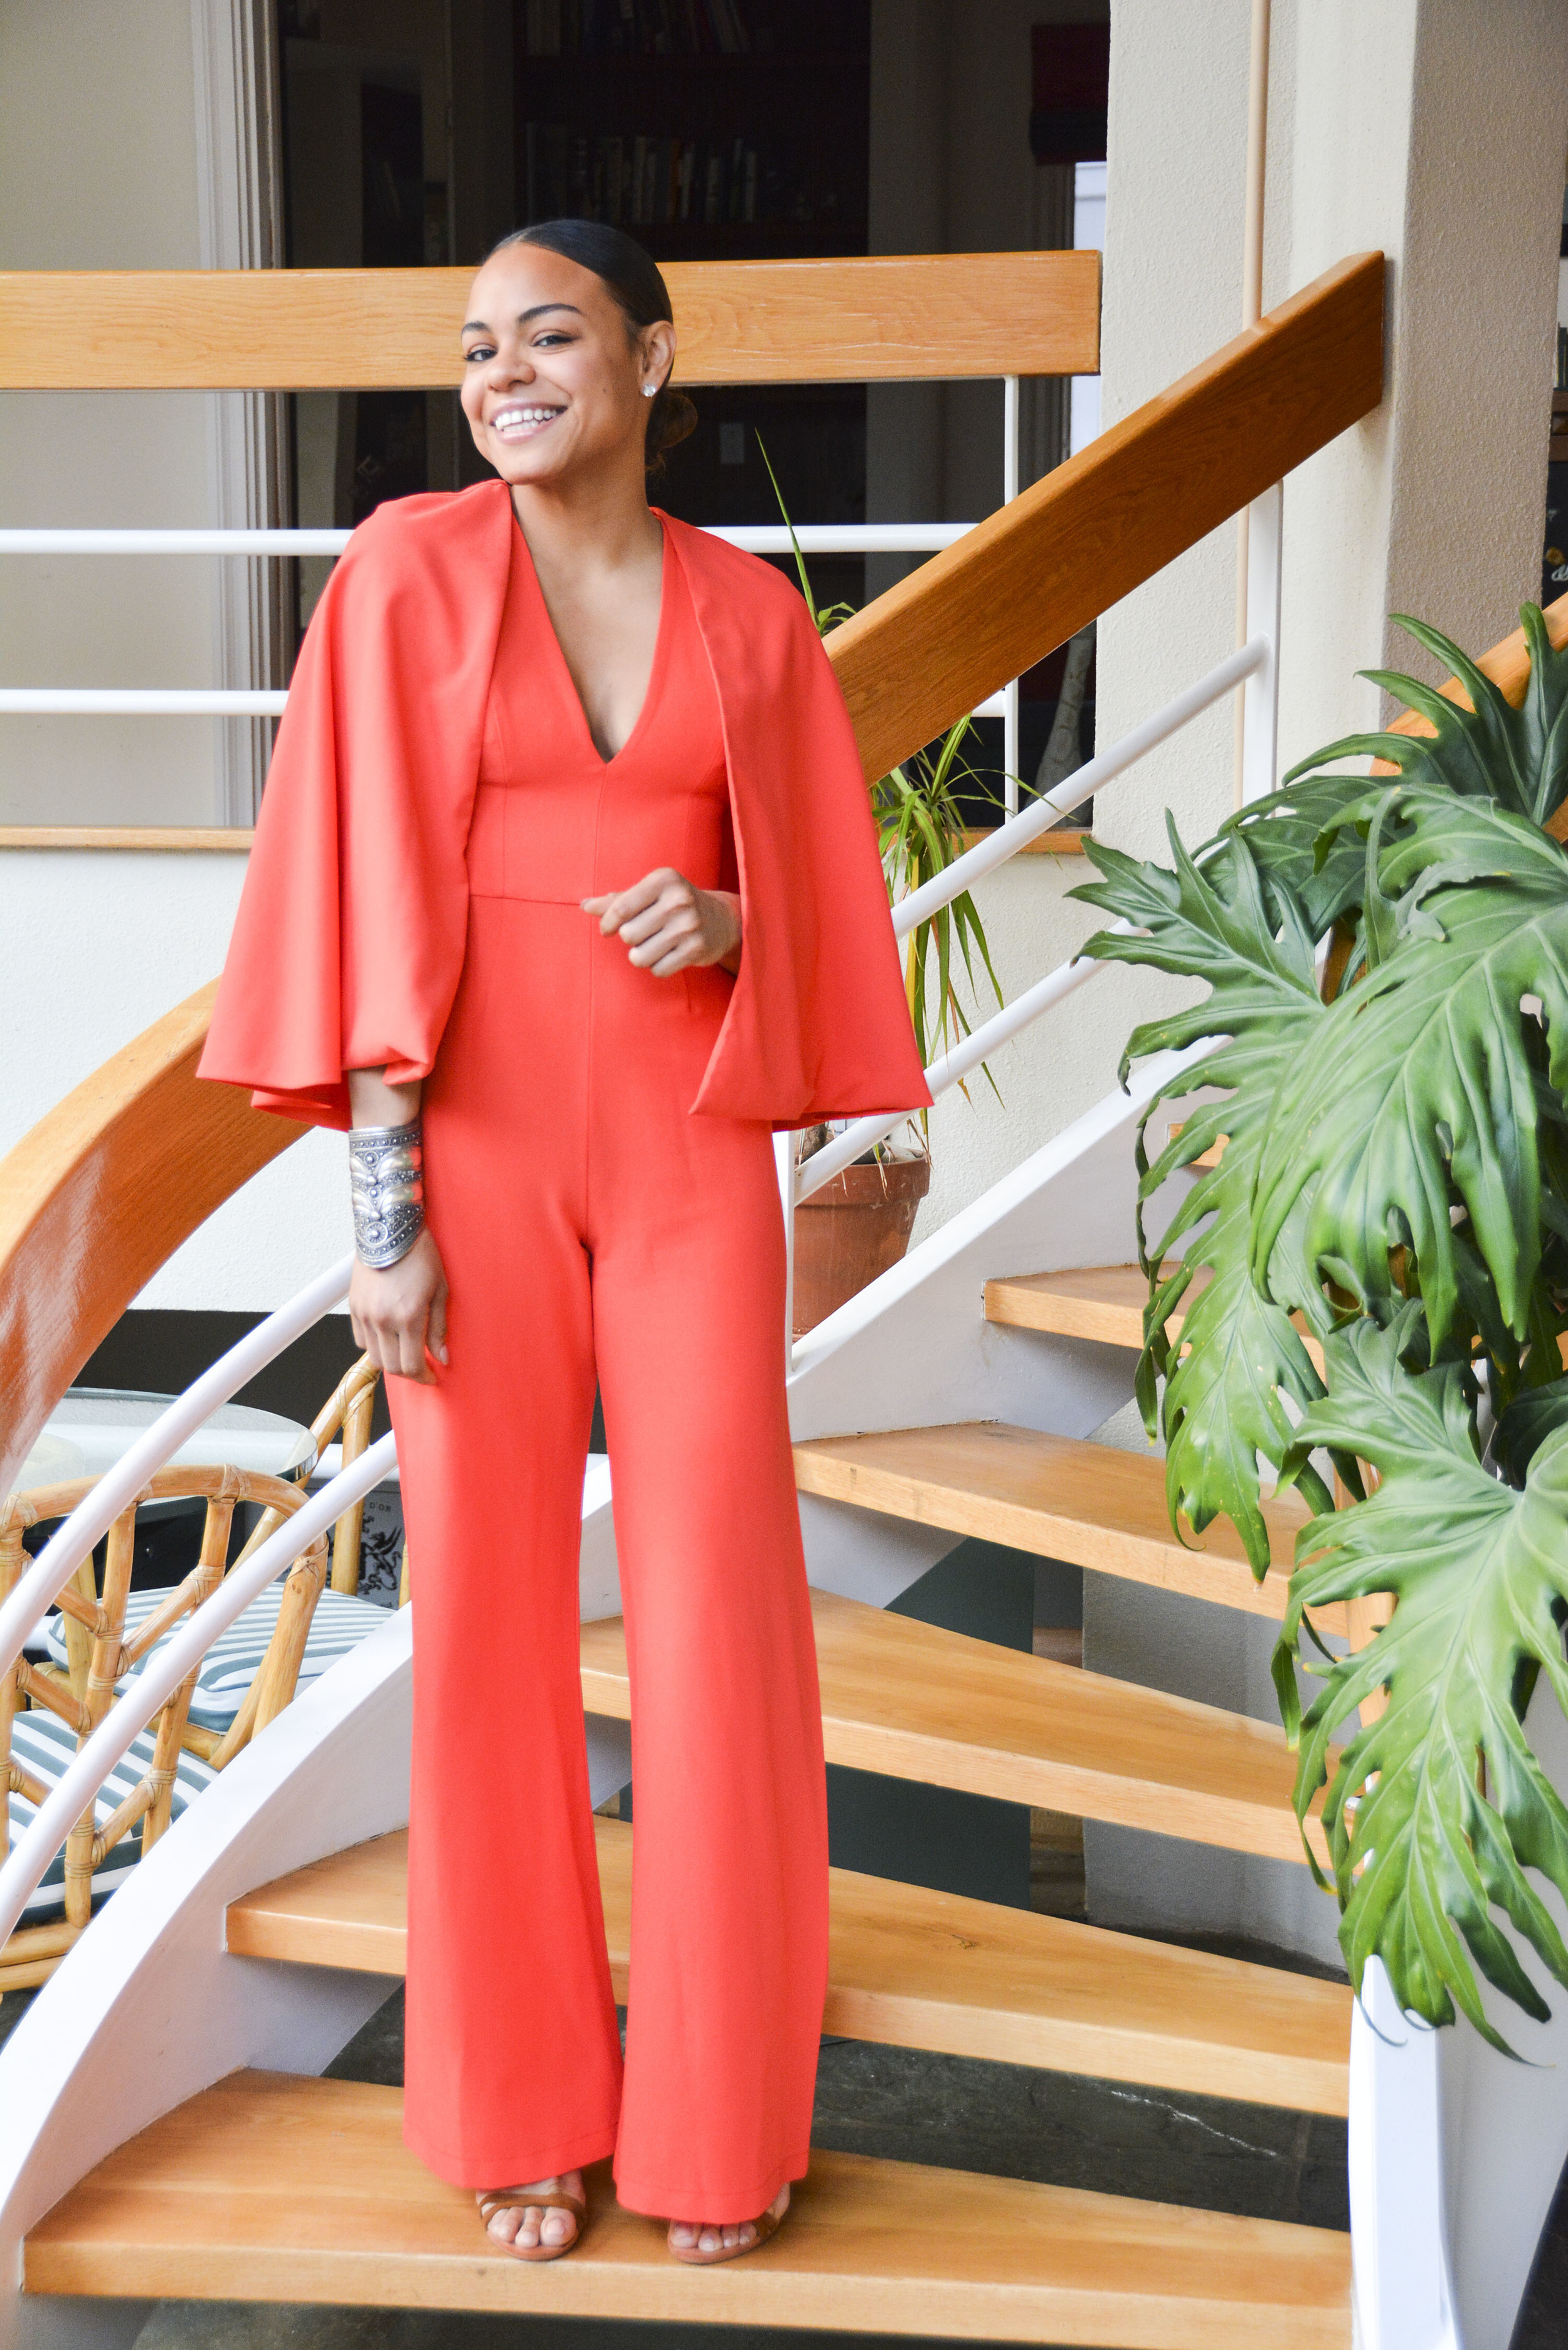 wearing: Jumpsuit by Alexis, shoes by Rebecca Minkoff